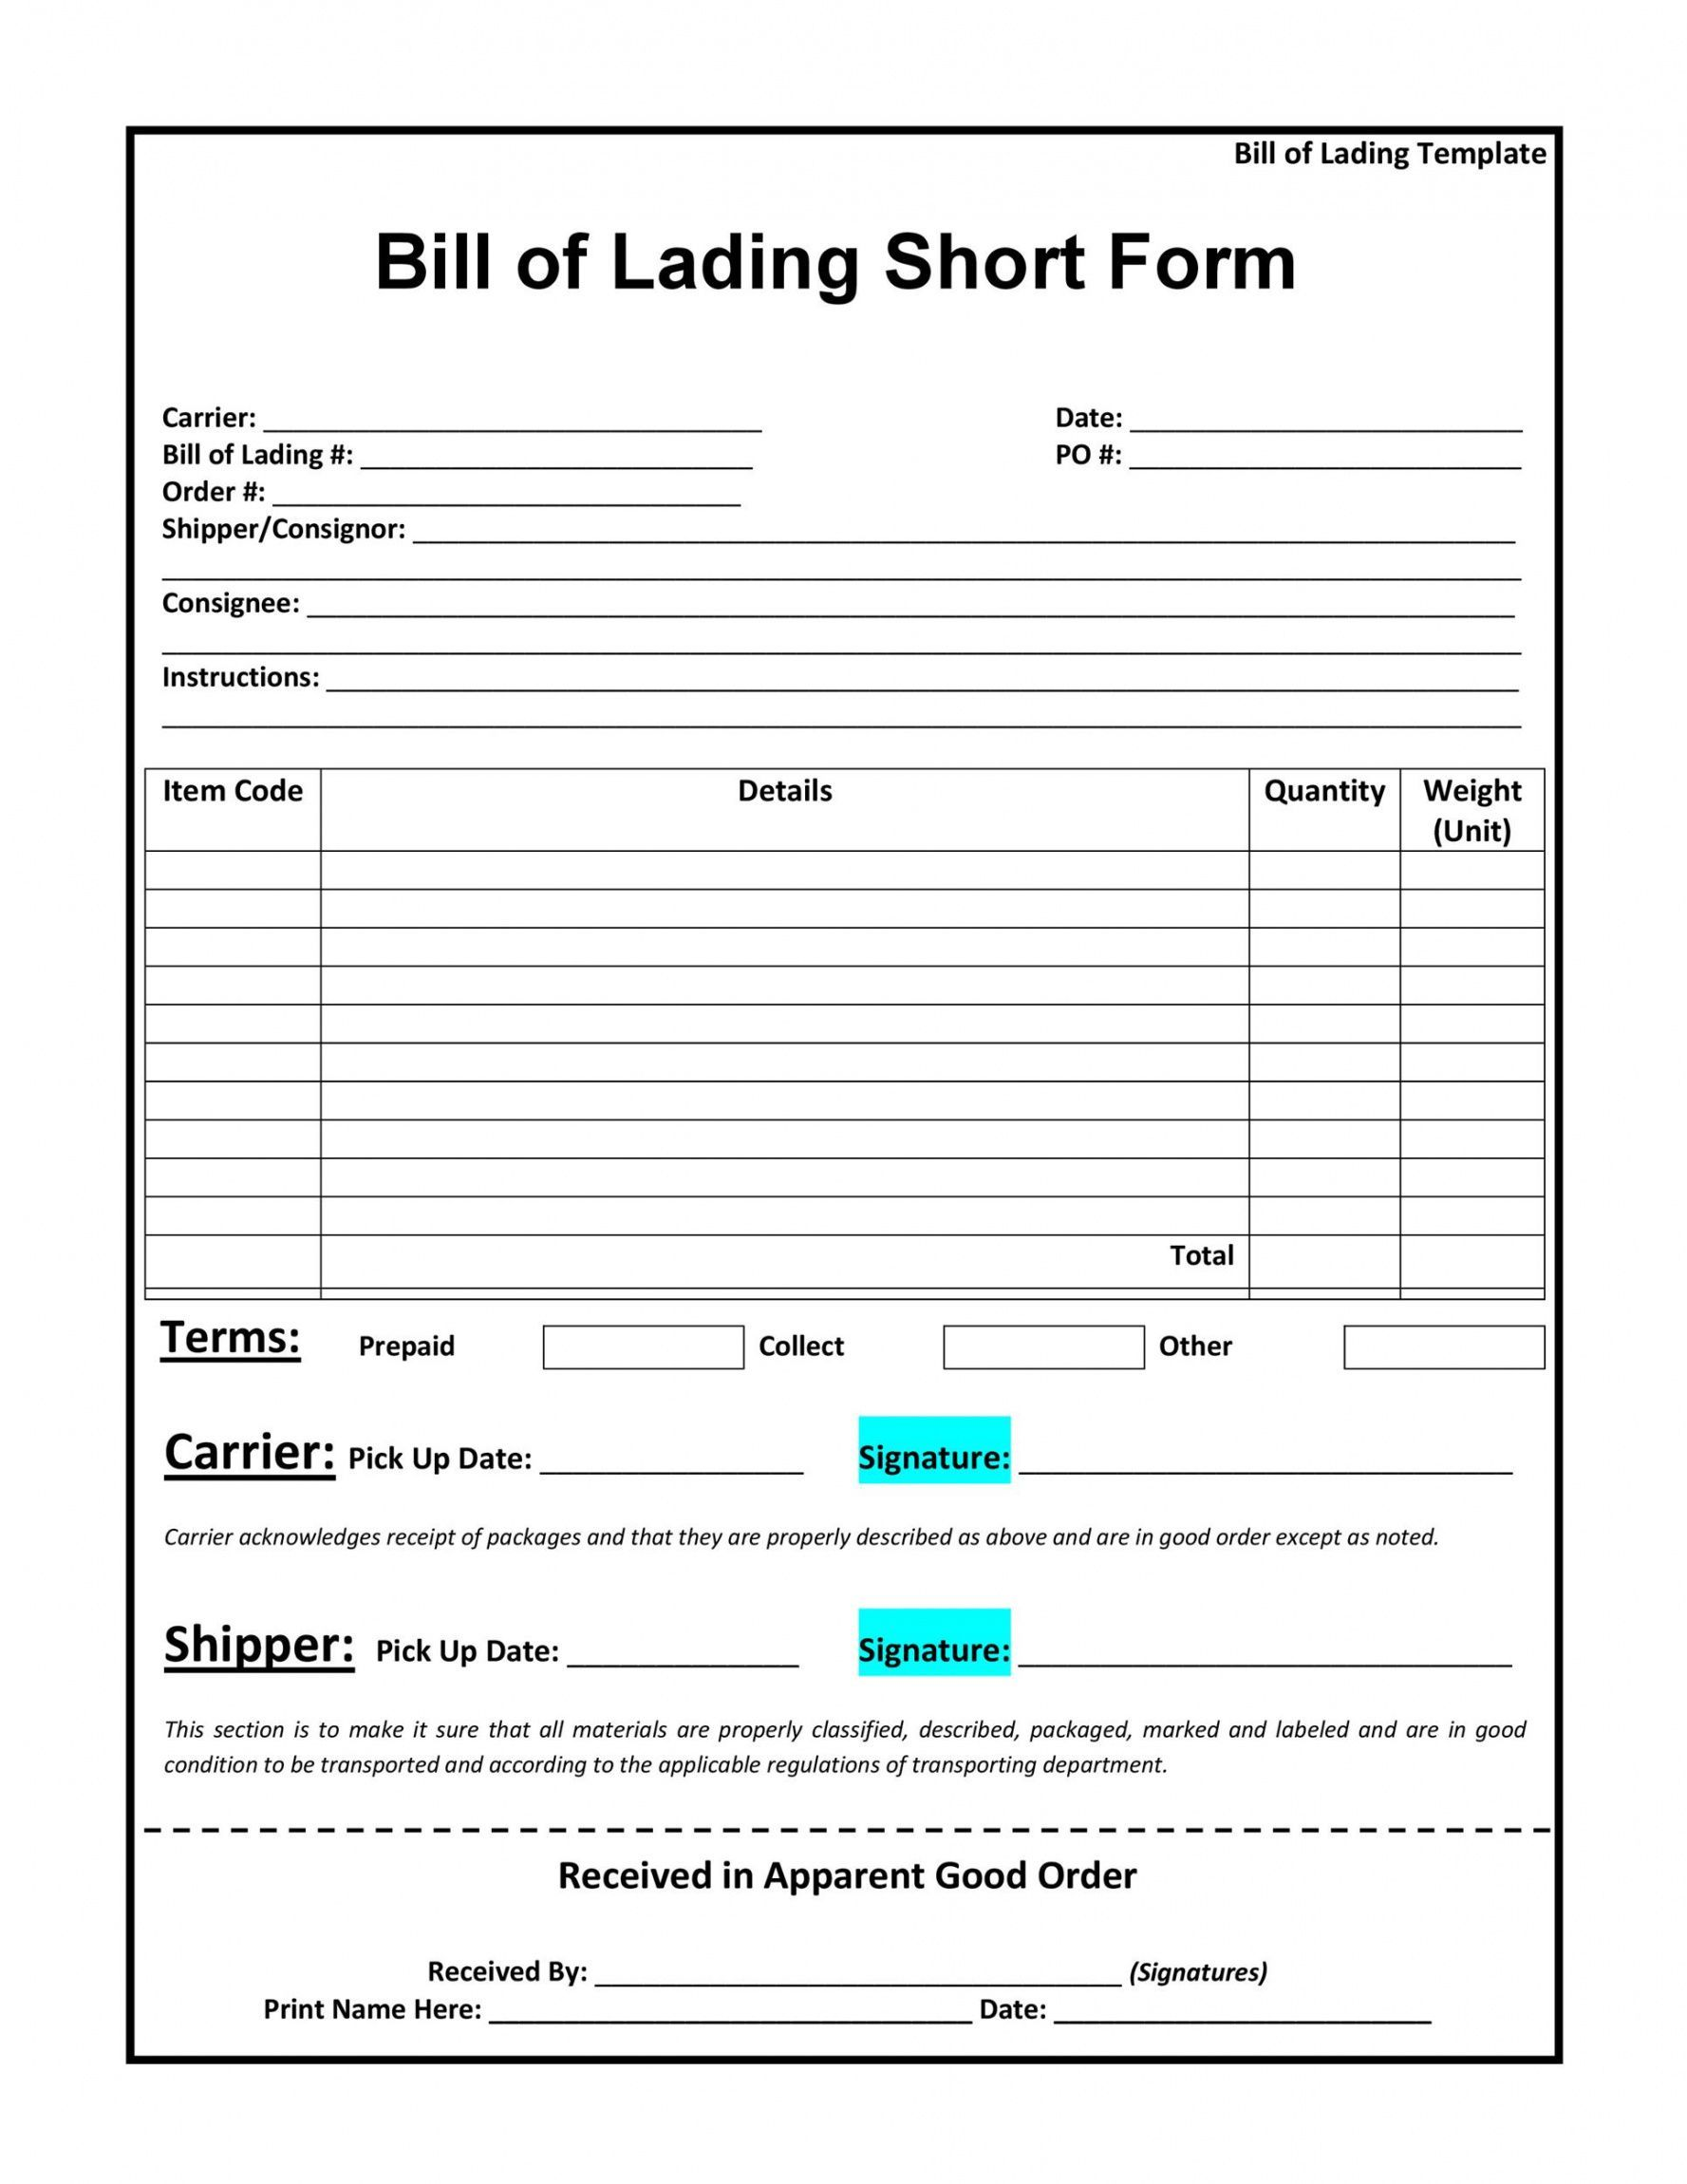 Explore Our Image Of Truck Bill Of Lading Template For Free Bill Of Lading Business Template Bill Template